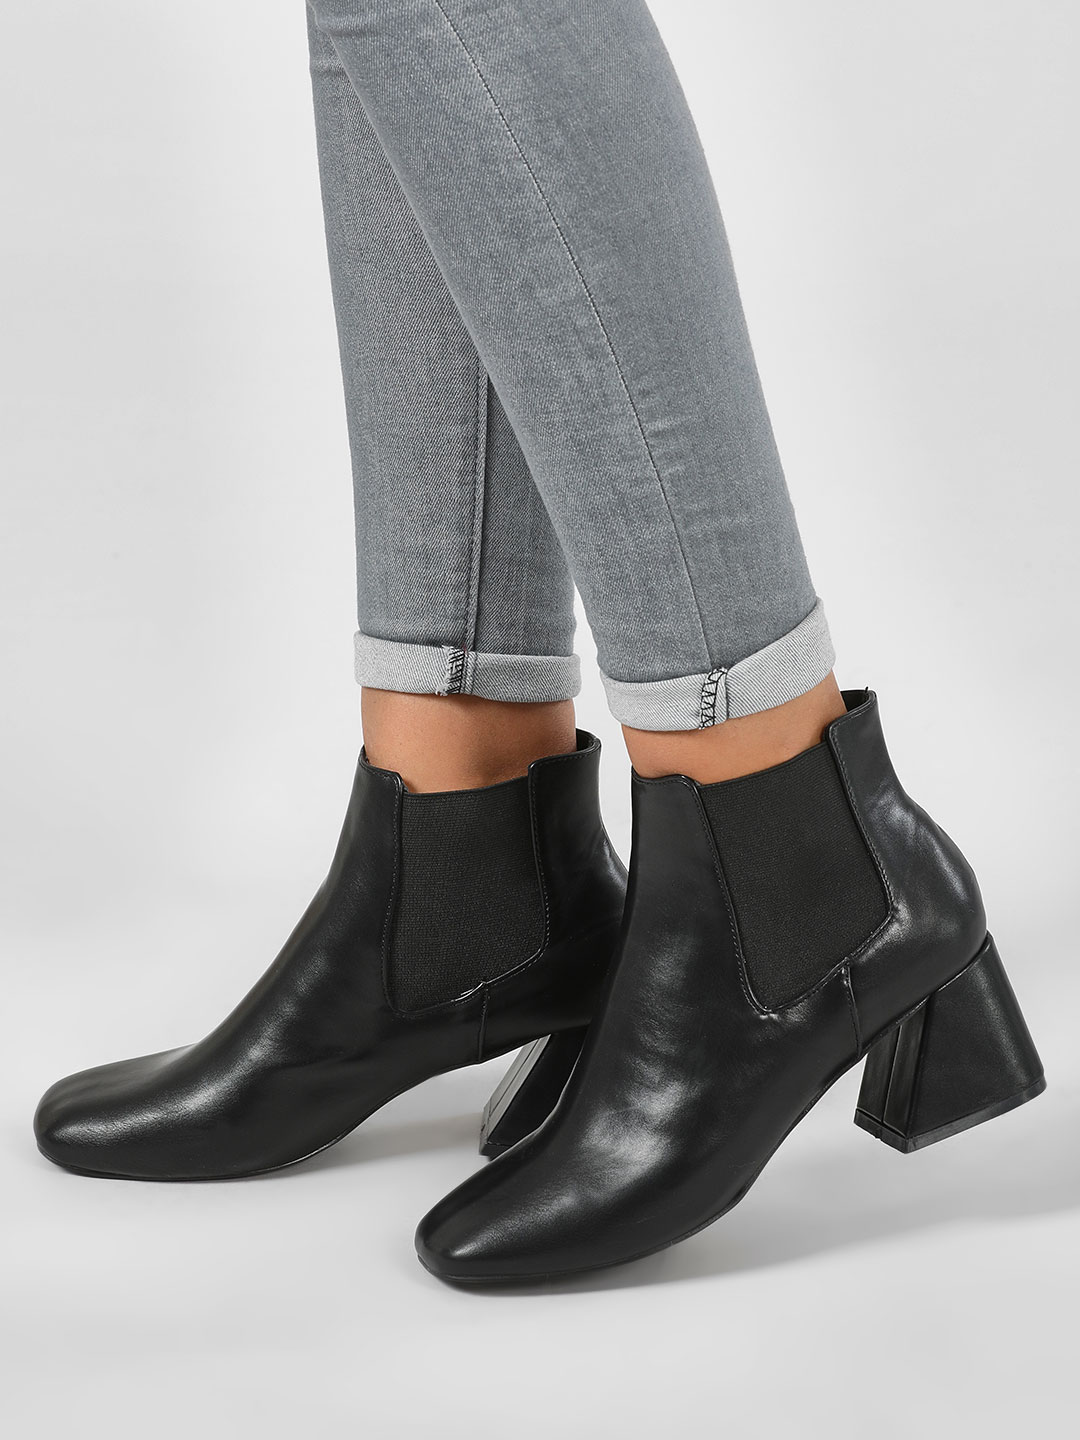 Intoto Black Flared Heel Chelsea Boots 1